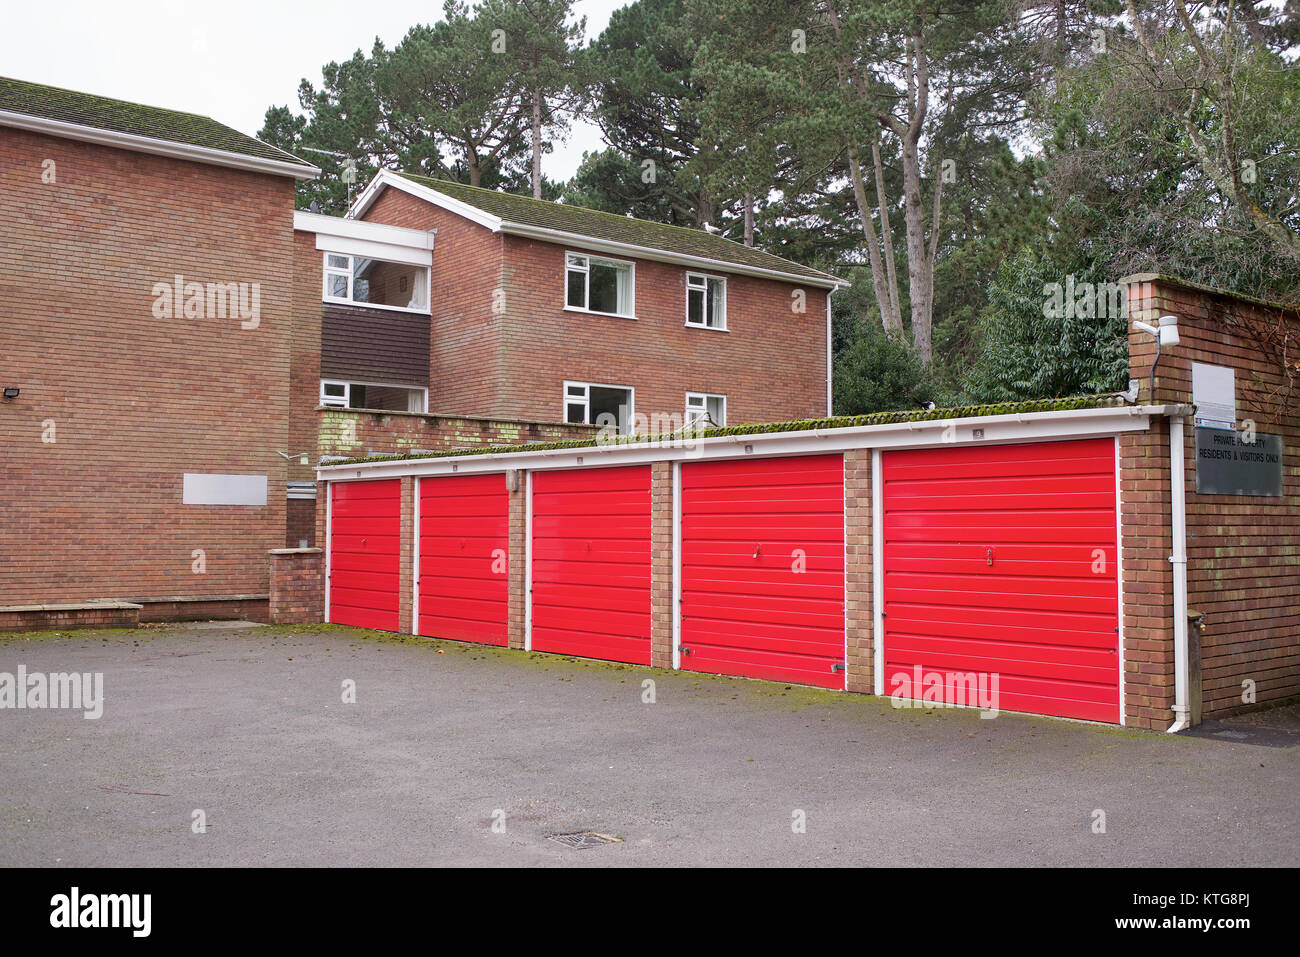 Garages with red doors and flats complex - Stock Image